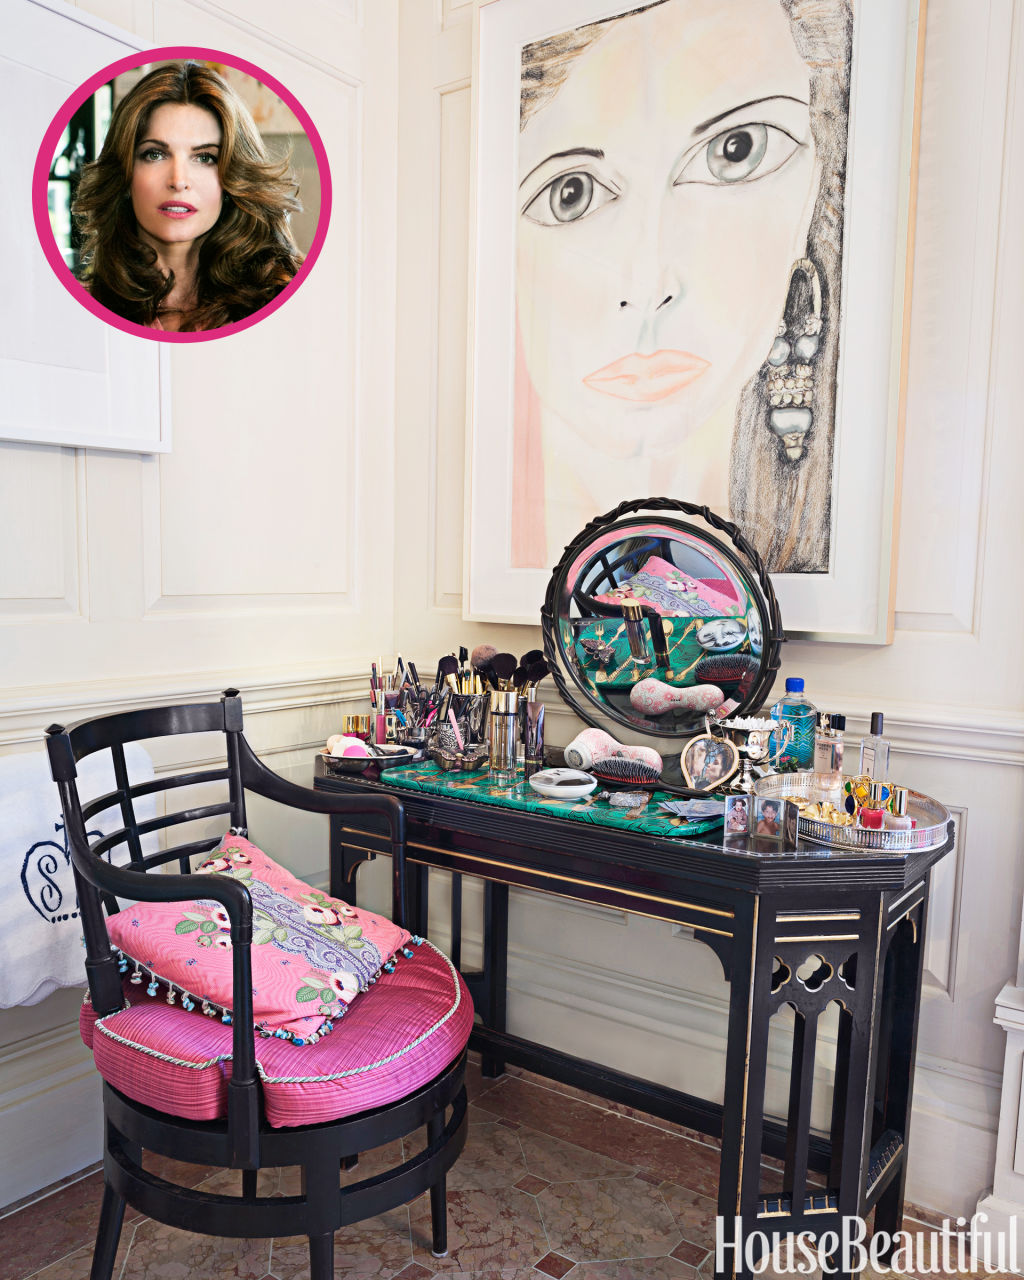 The 15 Most Beautiful Kitchens On Pinterest: Stephanie Seymour Beauty Essentials